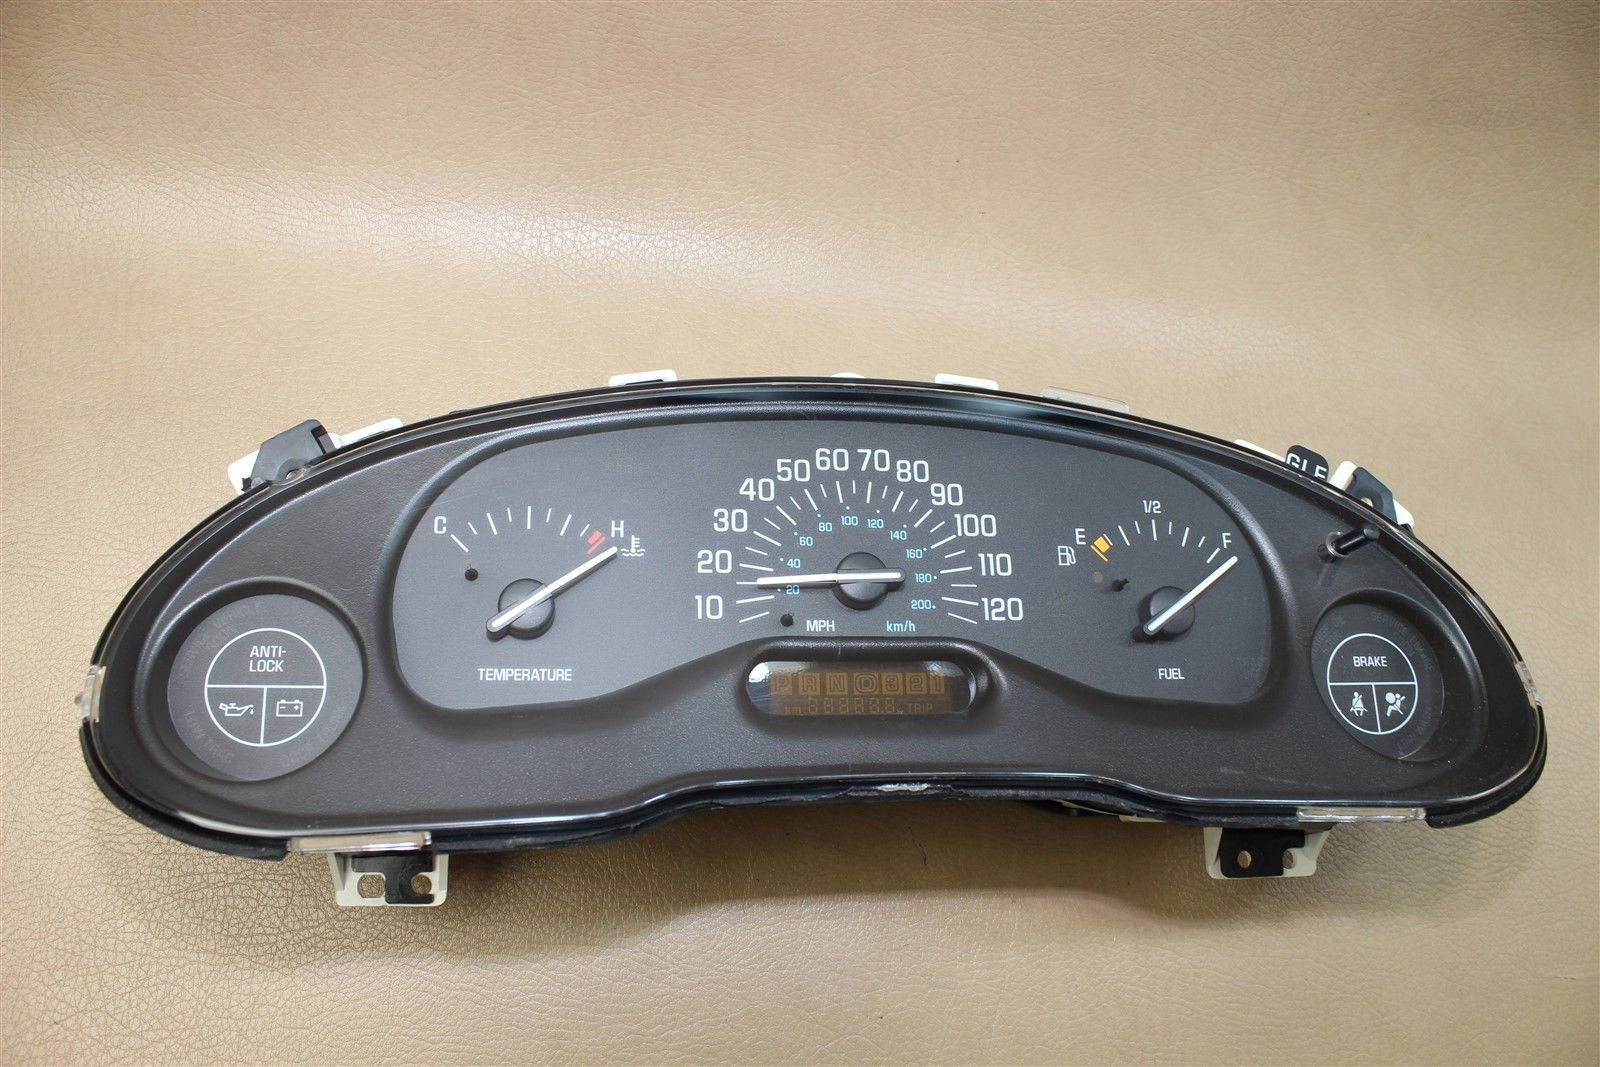 *REMAN* 97-04 BUICK CENTURY INSTRUMENT CLUSTER SPEEDOMETER GLE 16251854 Does Not Apply 864(1) - 7.2.18 NOON T1 *PROGRAM*